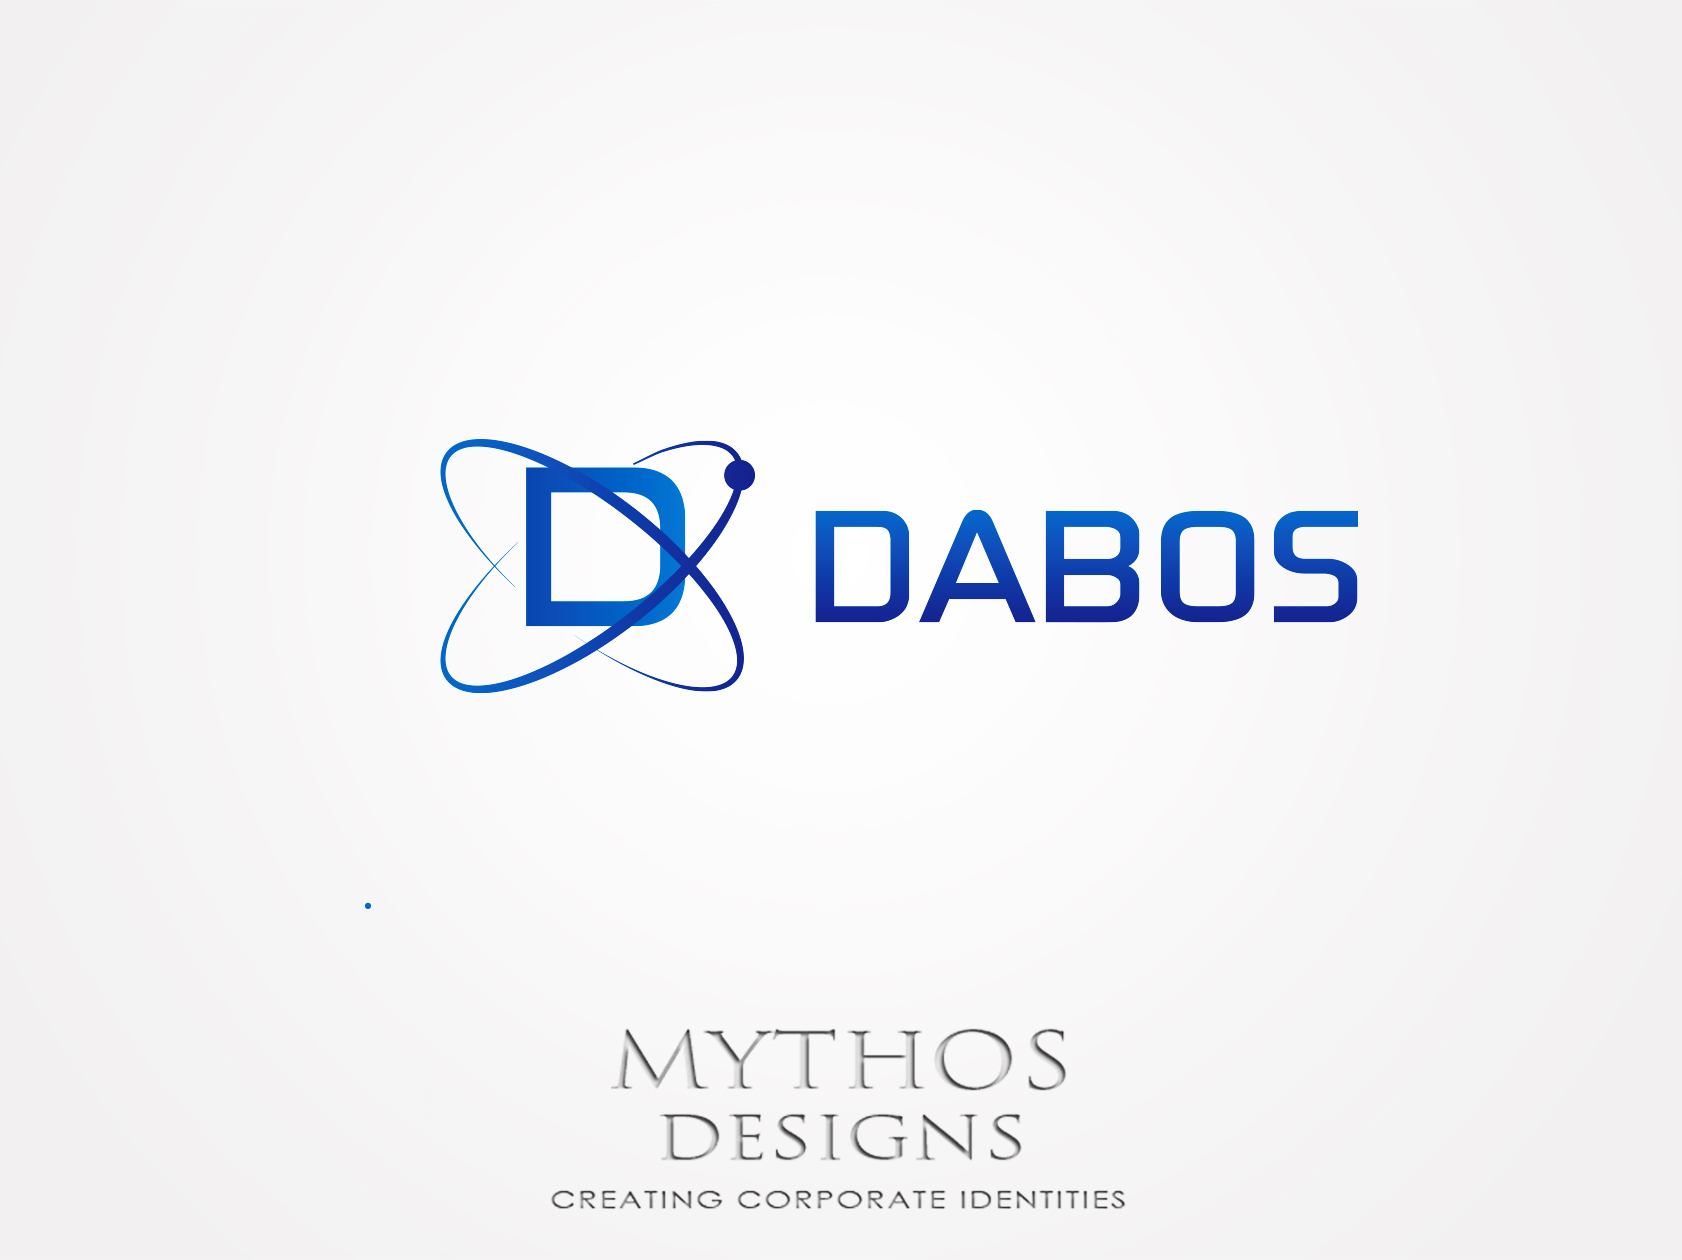 Logo Design by Mythos Designs - Entry No. 144 in the Logo Design Contest Imaginative Logo Design for DABOS, Limited Liability Company.